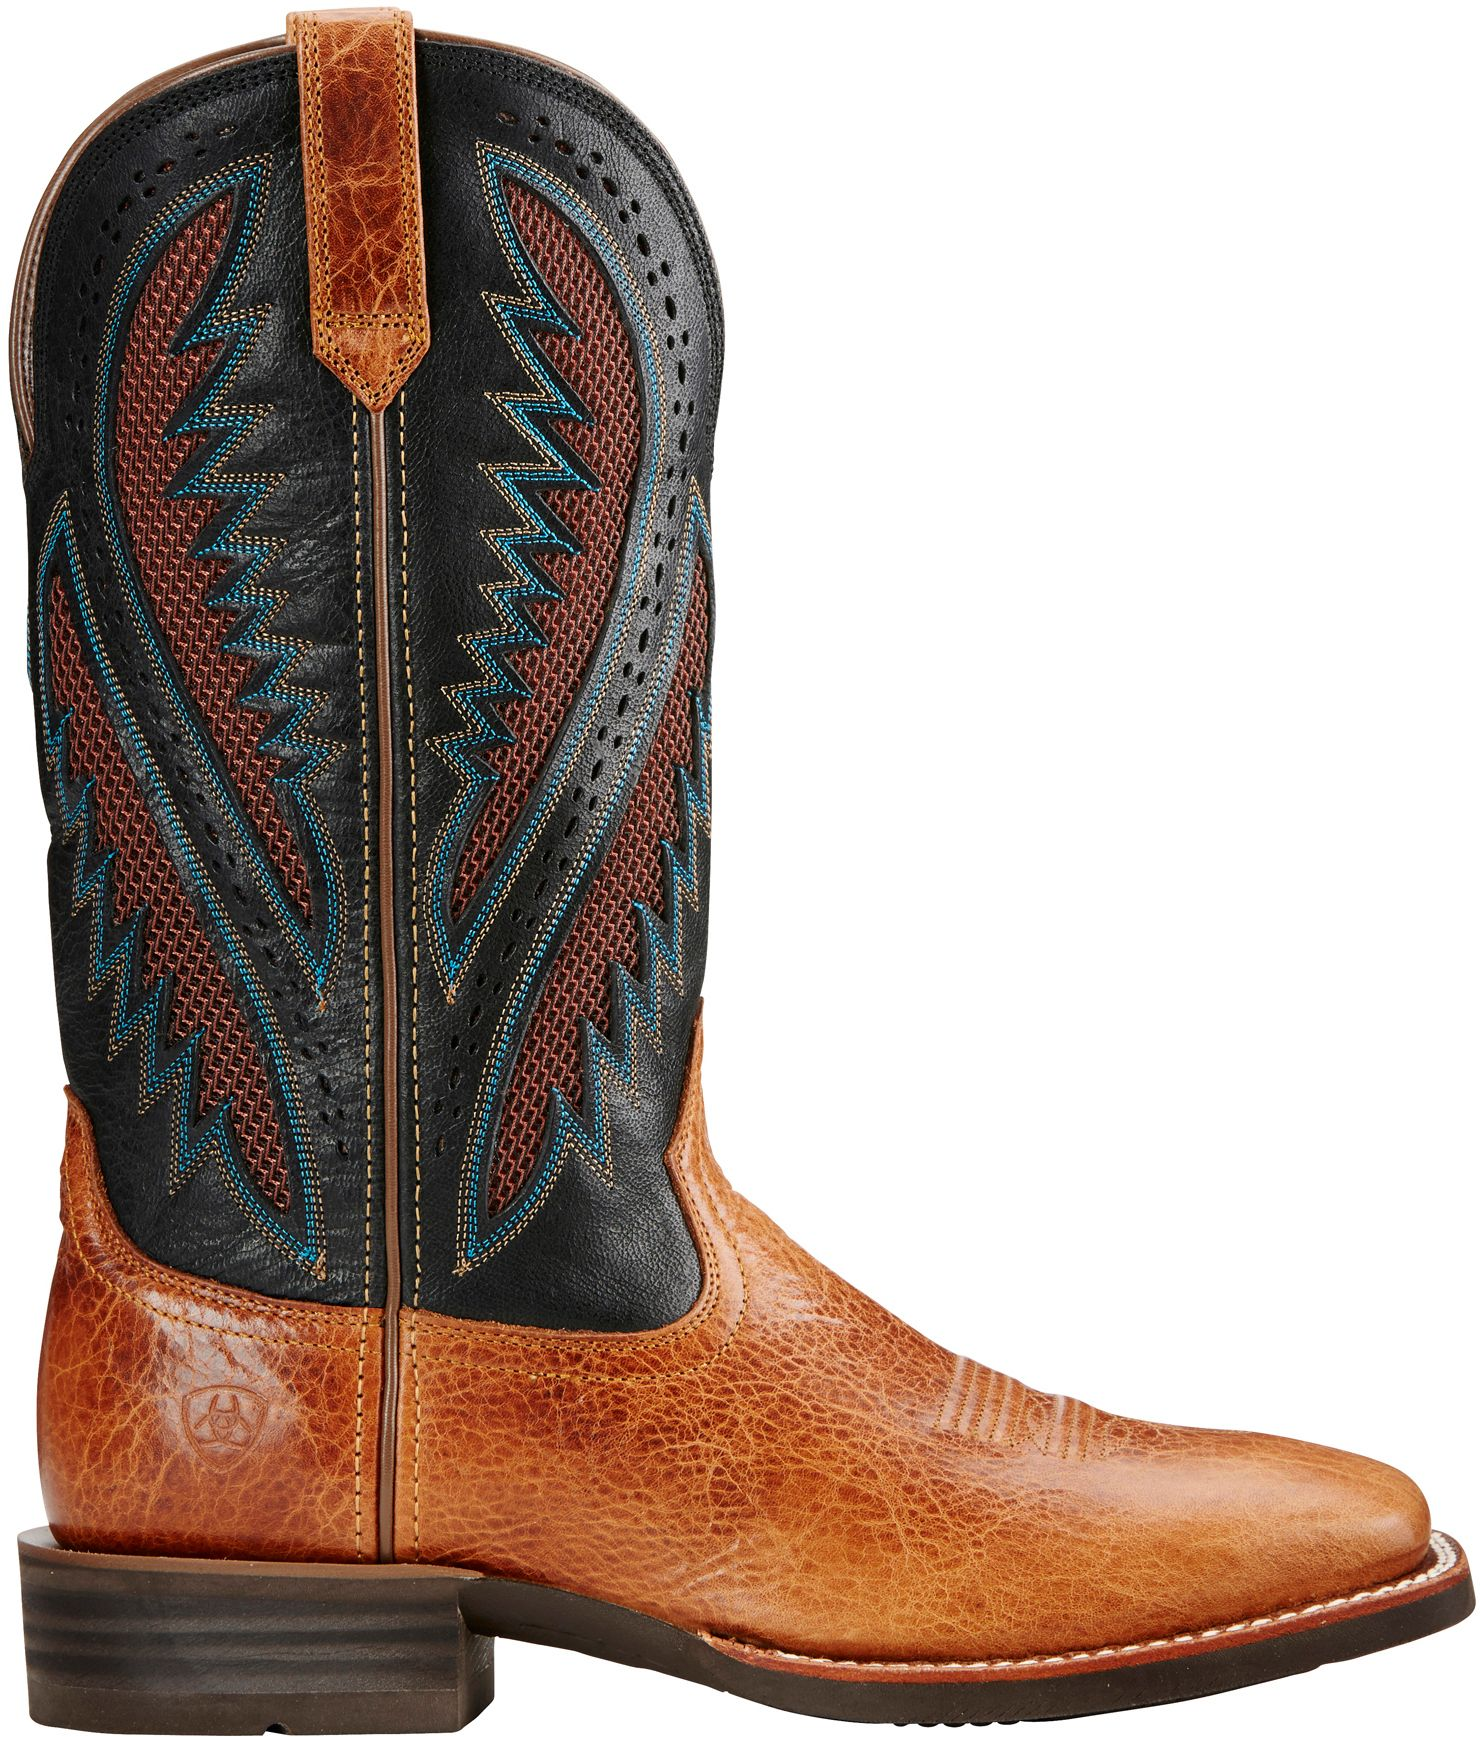 ab3e13adc13 Ariat Men's Quickdraw VentTek Western Boots